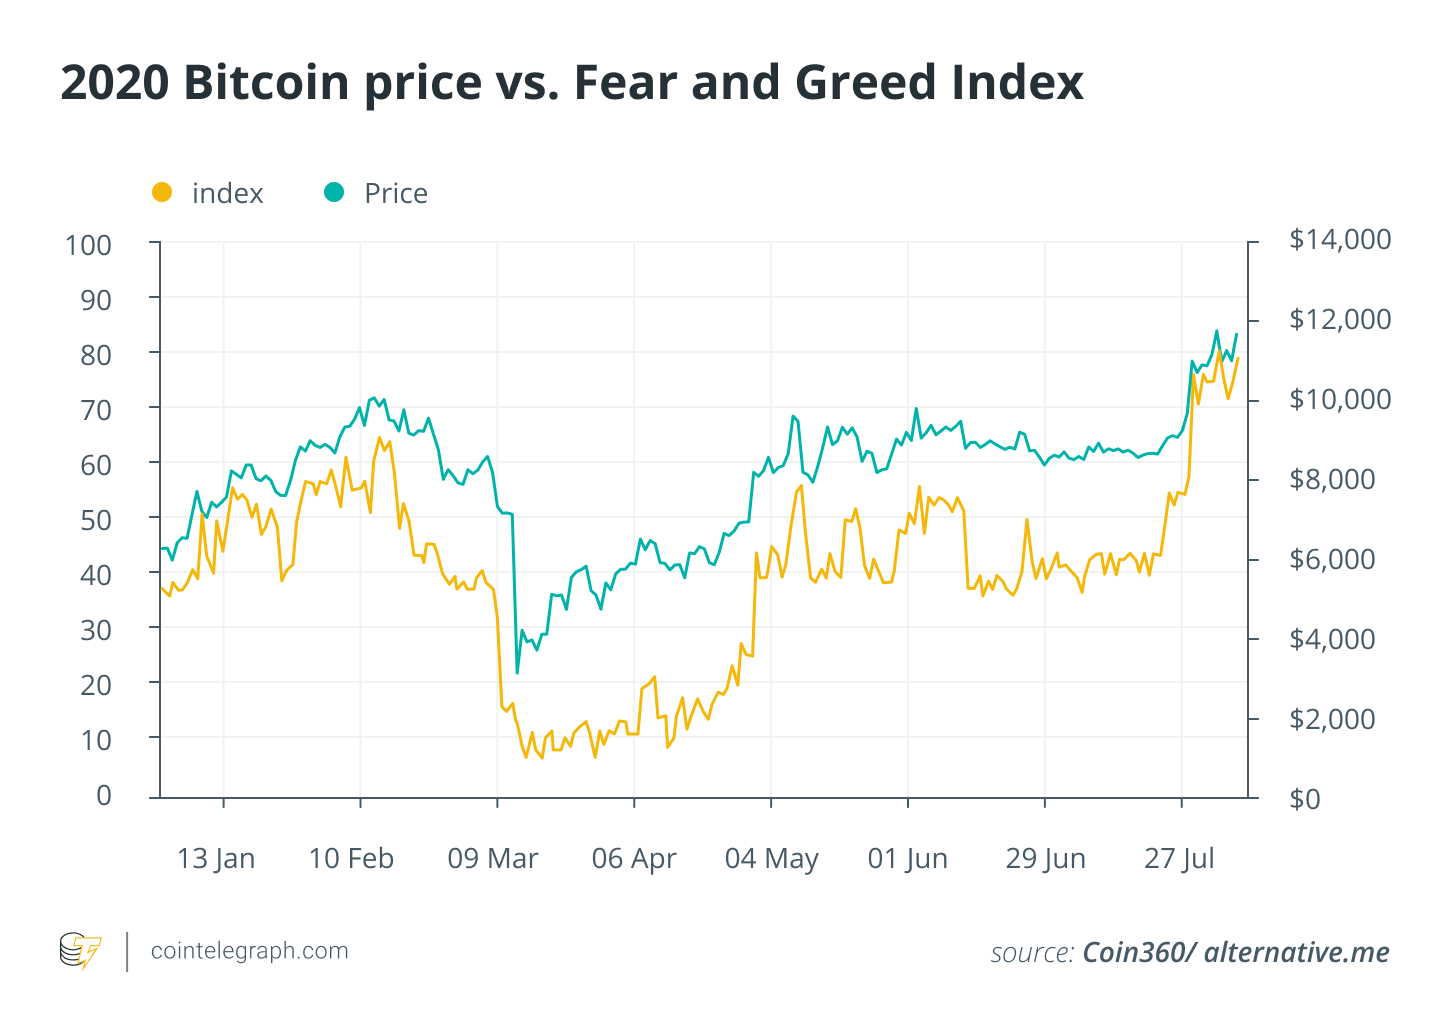 2020 Bitcoin price vs Fear and Greed Index